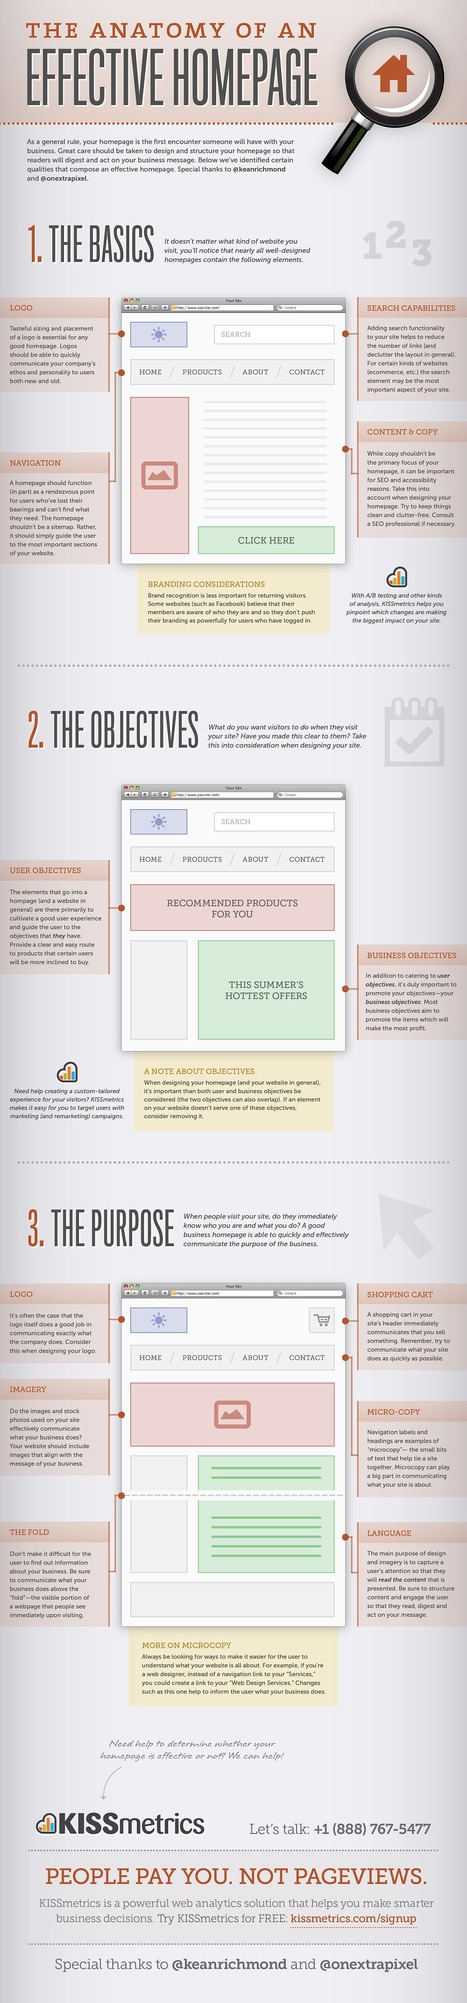 Ultimate Design Anatomy Of An Effective Website [Infographic] | Wordpress | Web-building | Scoop.it